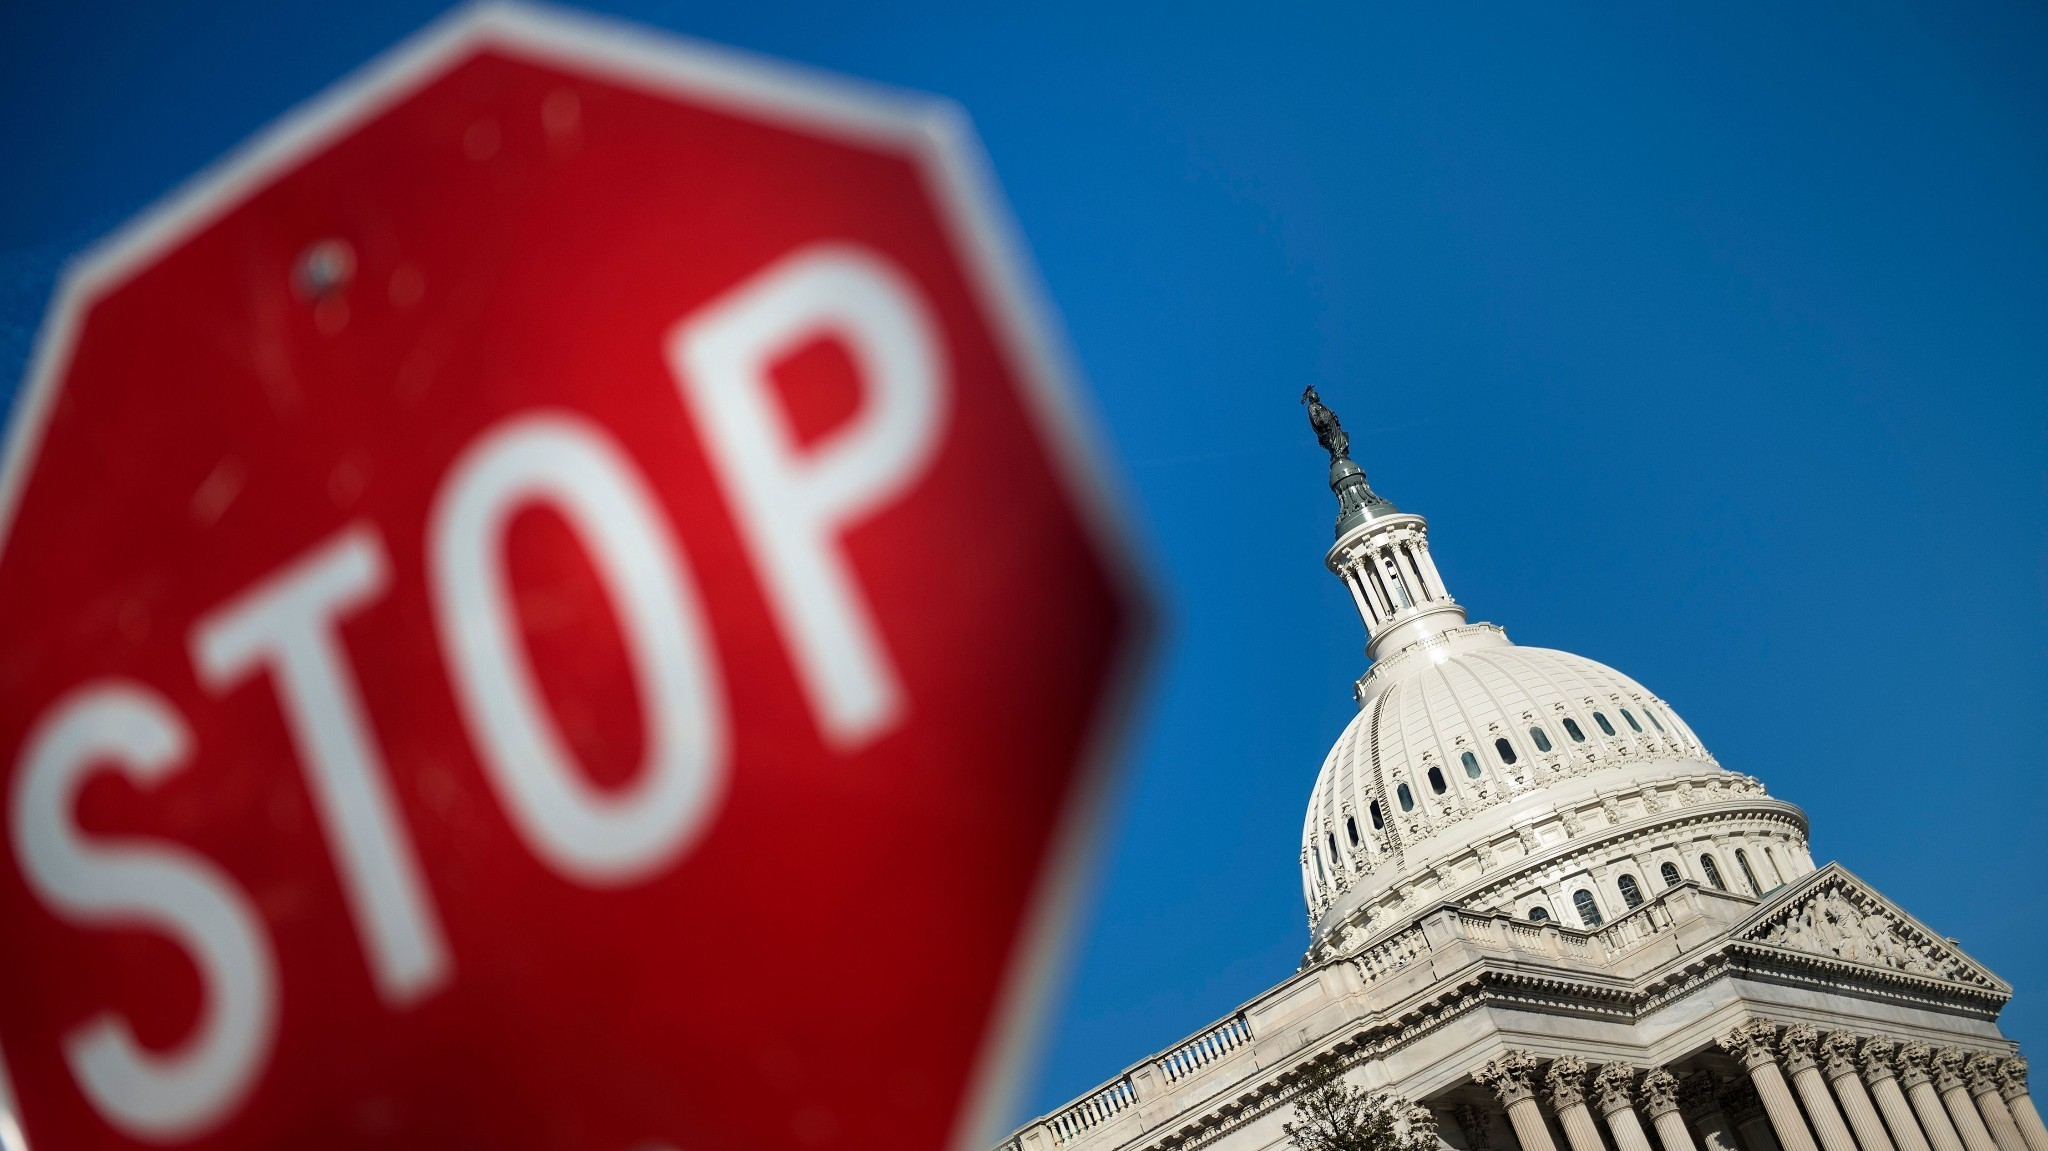 Few Signs Of Progress As Partial Government Shutdown Enters Second Day